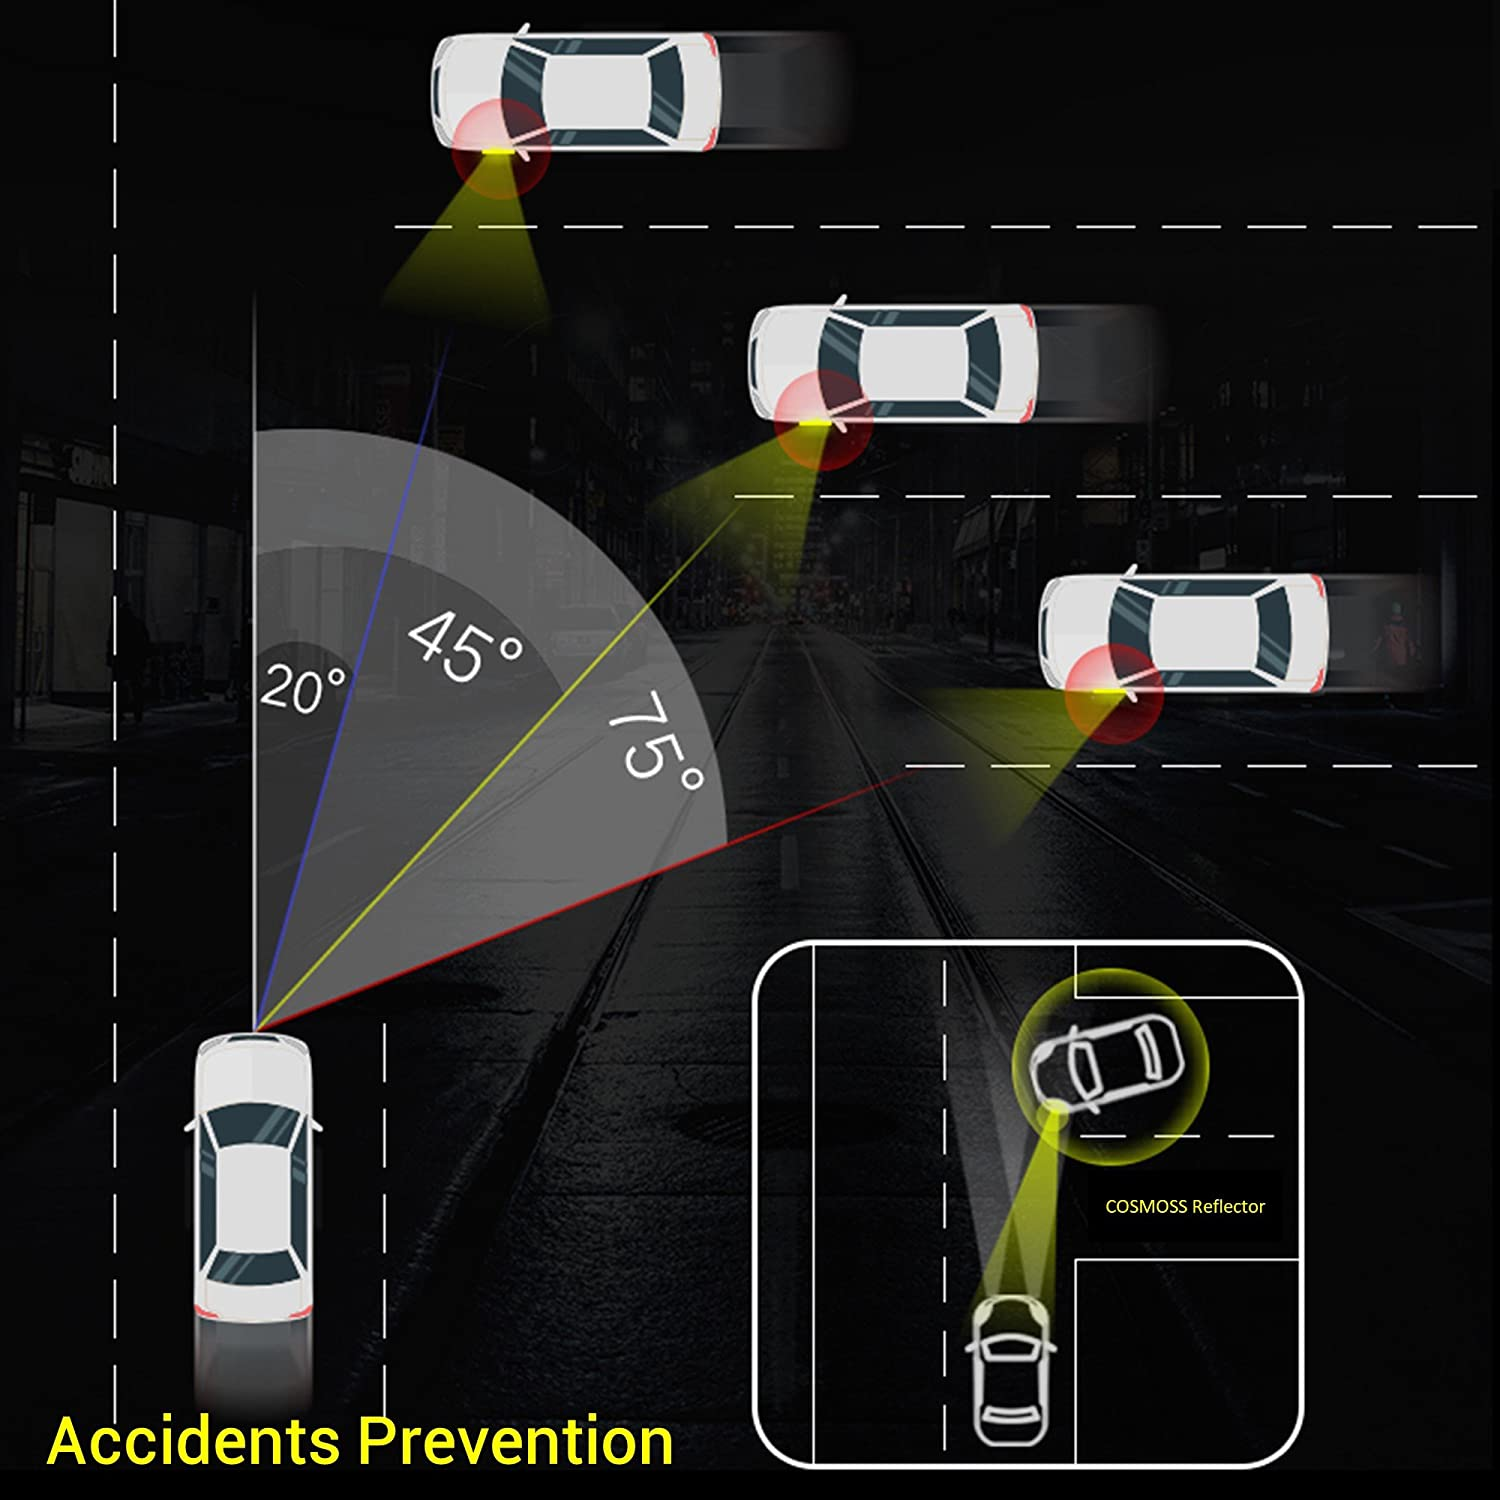 Blue, 5.5-in x 0.9-in Reflective Tape Caution Warning Safety Reflector Strips Sticker Fluorescent Waterproof Reflective Car Decals for Automobile Car Pickup Truck SUV RV Boat Motorbike Helmet 4pcs